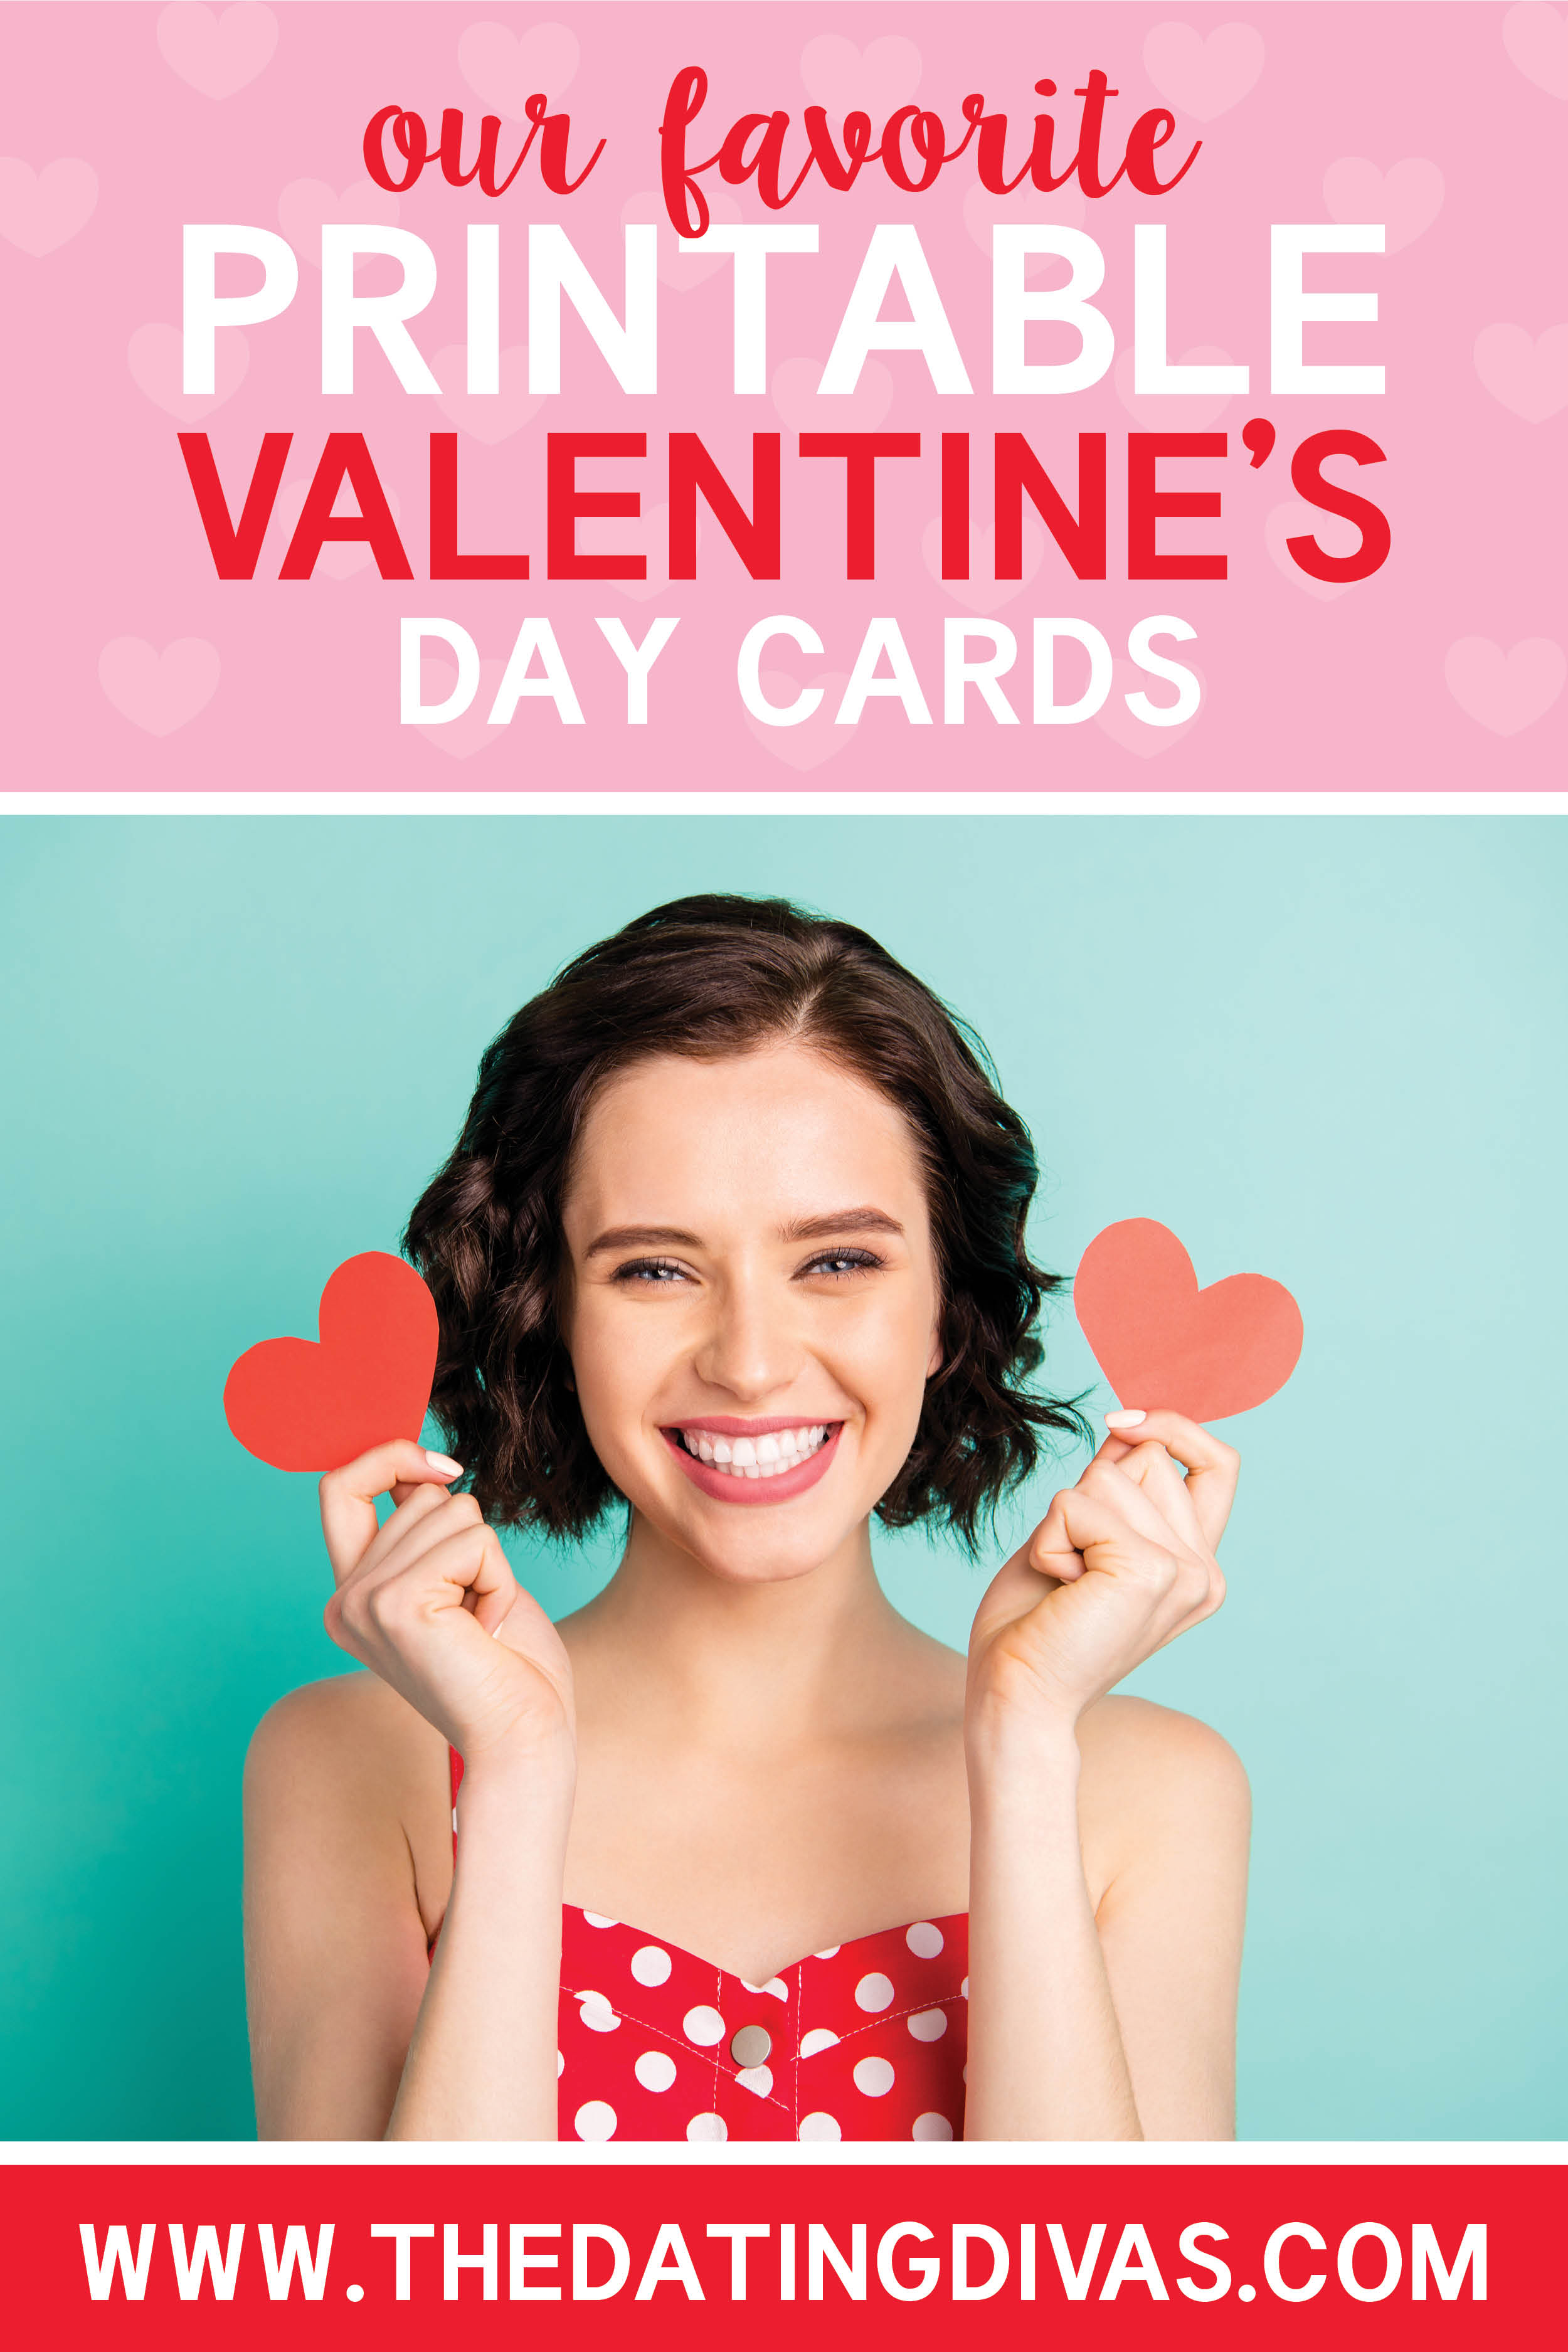 This is the BEST list of printable valentine cards I've seen! Who doesn't love free valentine's day cards?! #datingdivas #printablevalentinecards #freevalentinesdaycards